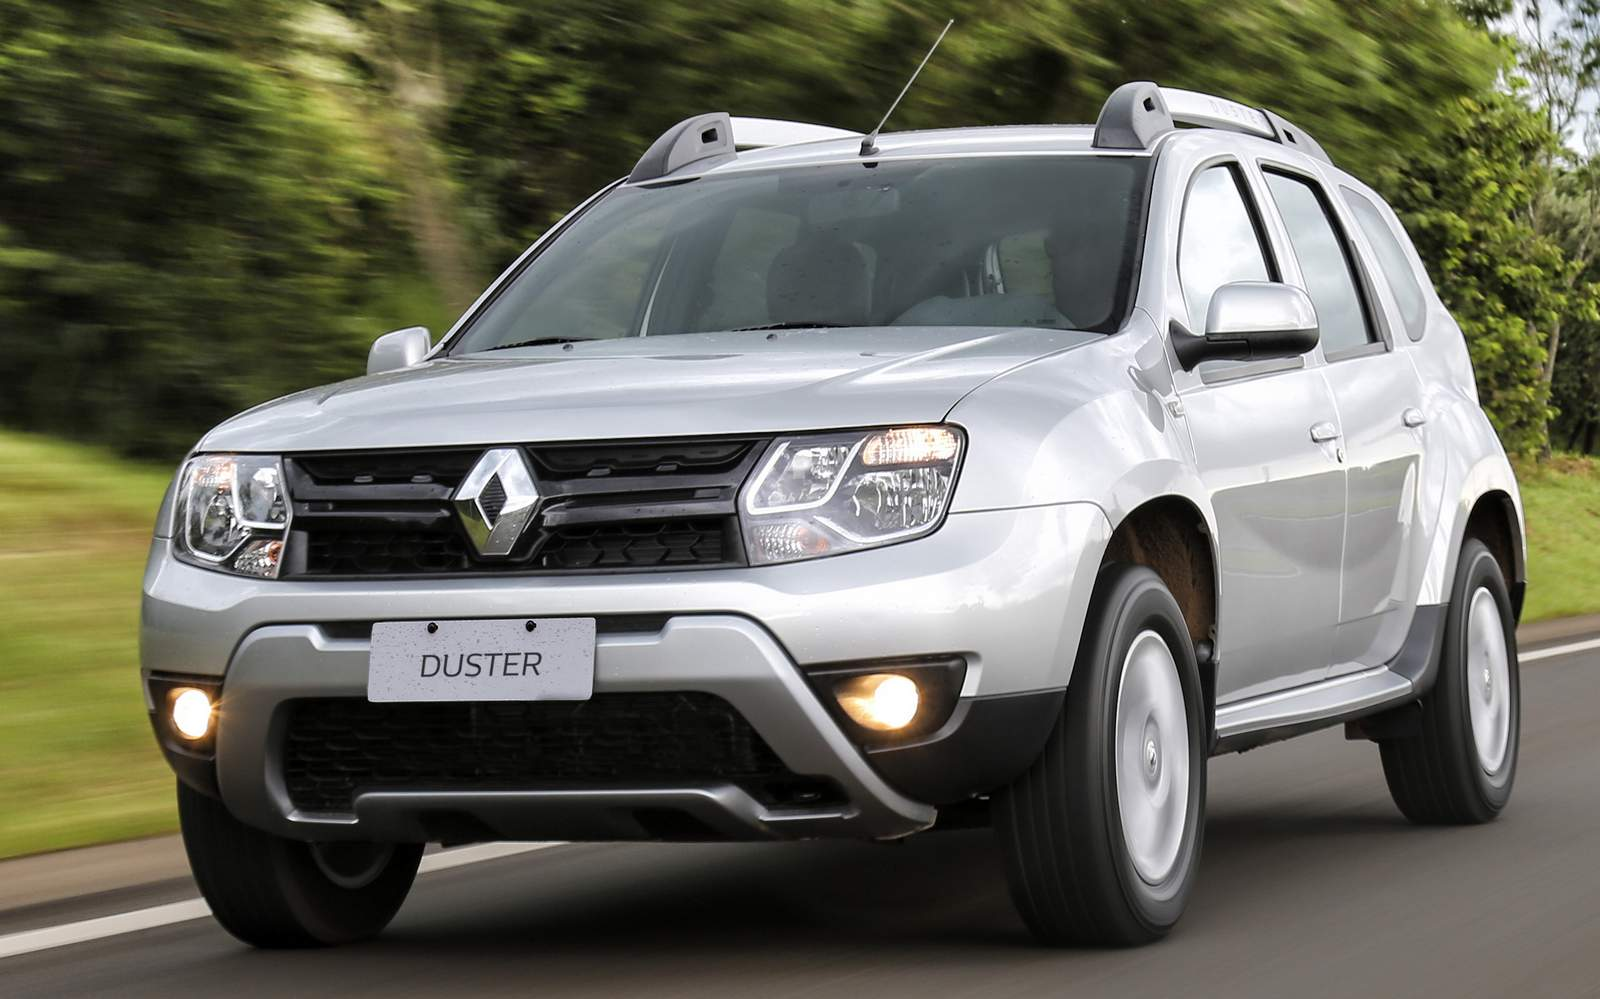 renault duster 2016 pre os reduzidos em at r reais car blog br. Black Bedroom Furniture Sets. Home Design Ideas